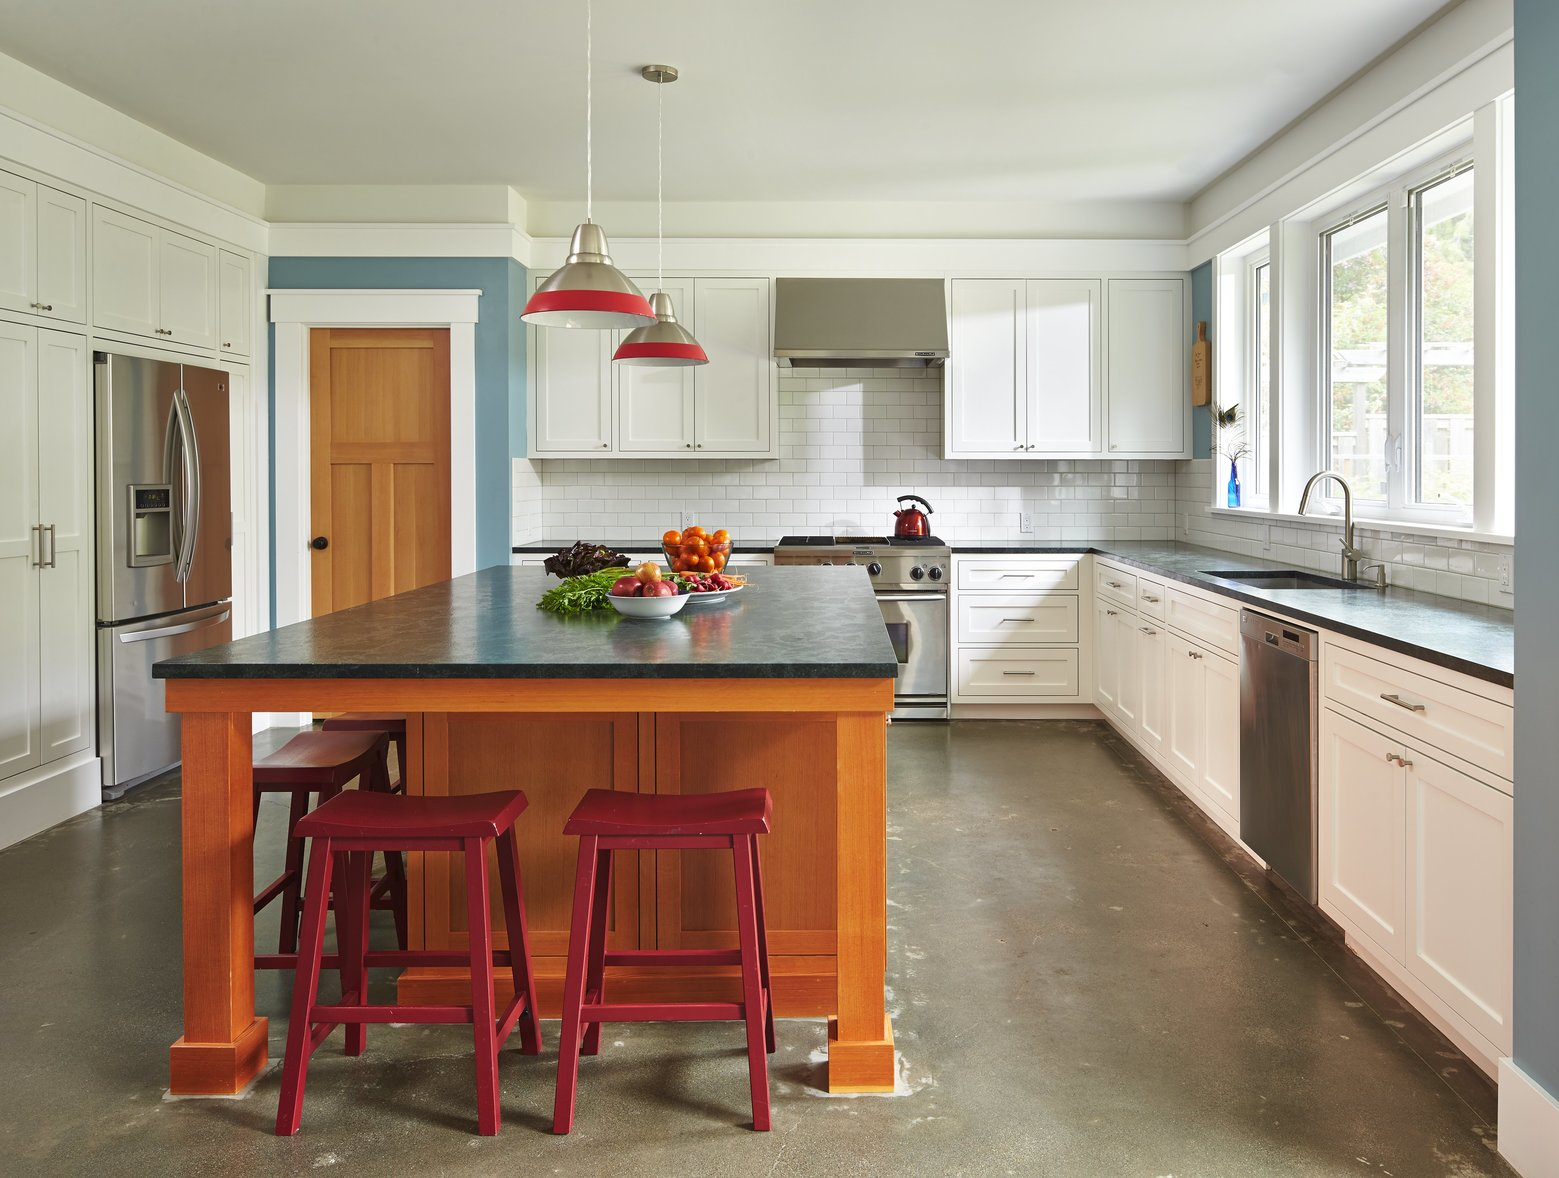 Kitchen Island 3 Feet By 5 Feet plain kitchen island 5 feet a large granitetopped with throughout